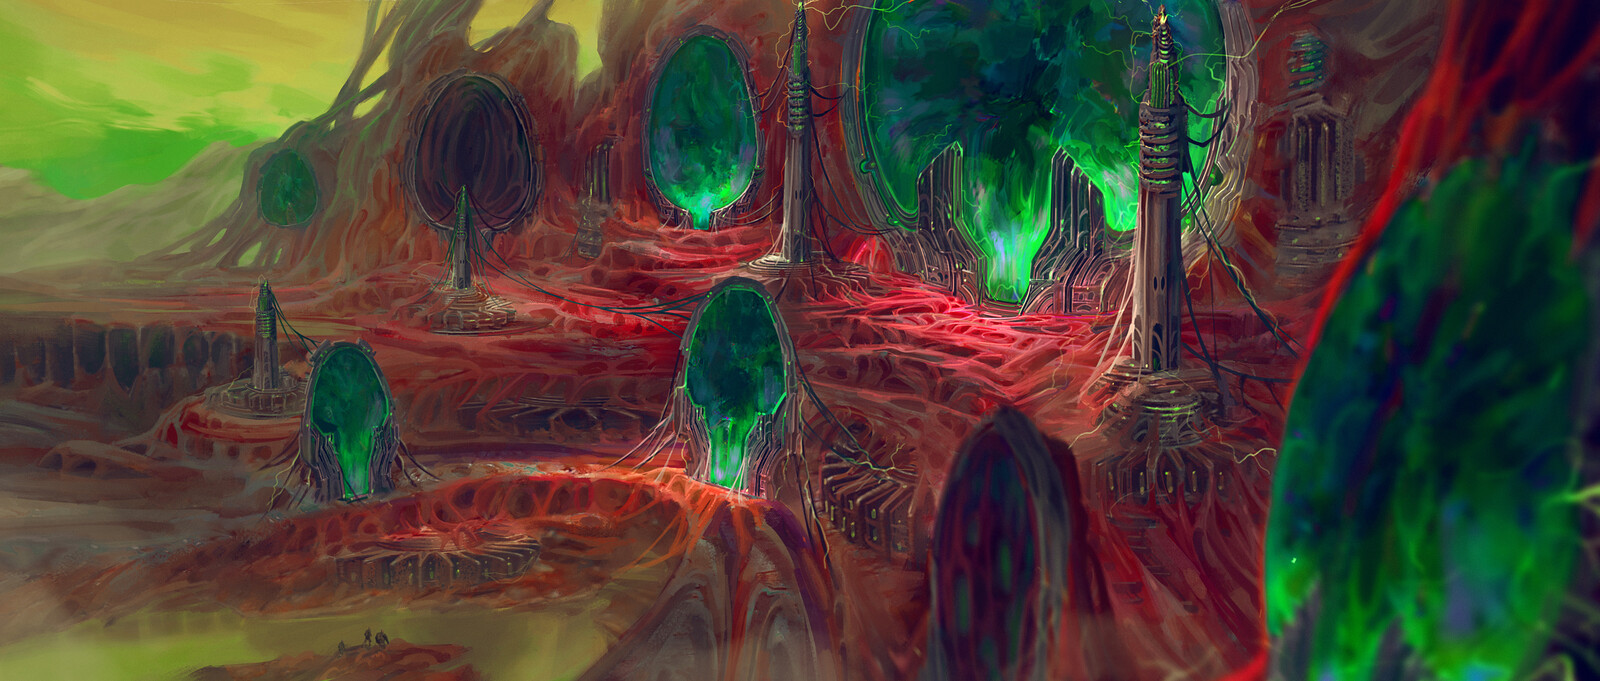 World of Flesh and Machine with Arch Portals